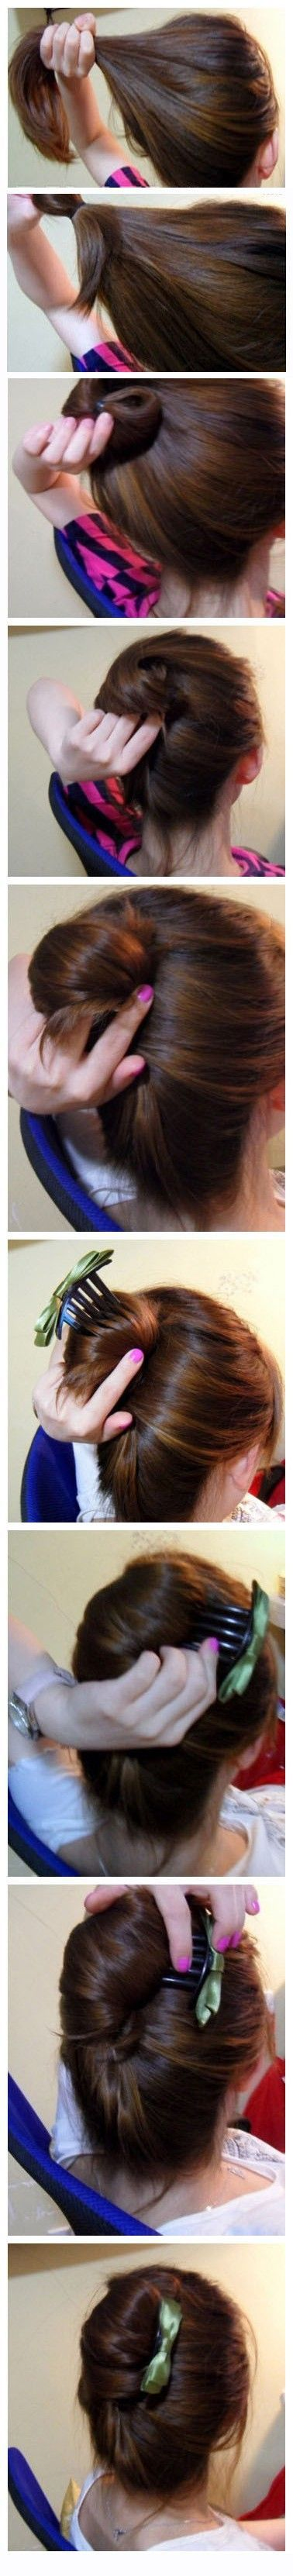 Cheater French Twist - Perfect for an easy prom up-do! Get prom clips at Claire's